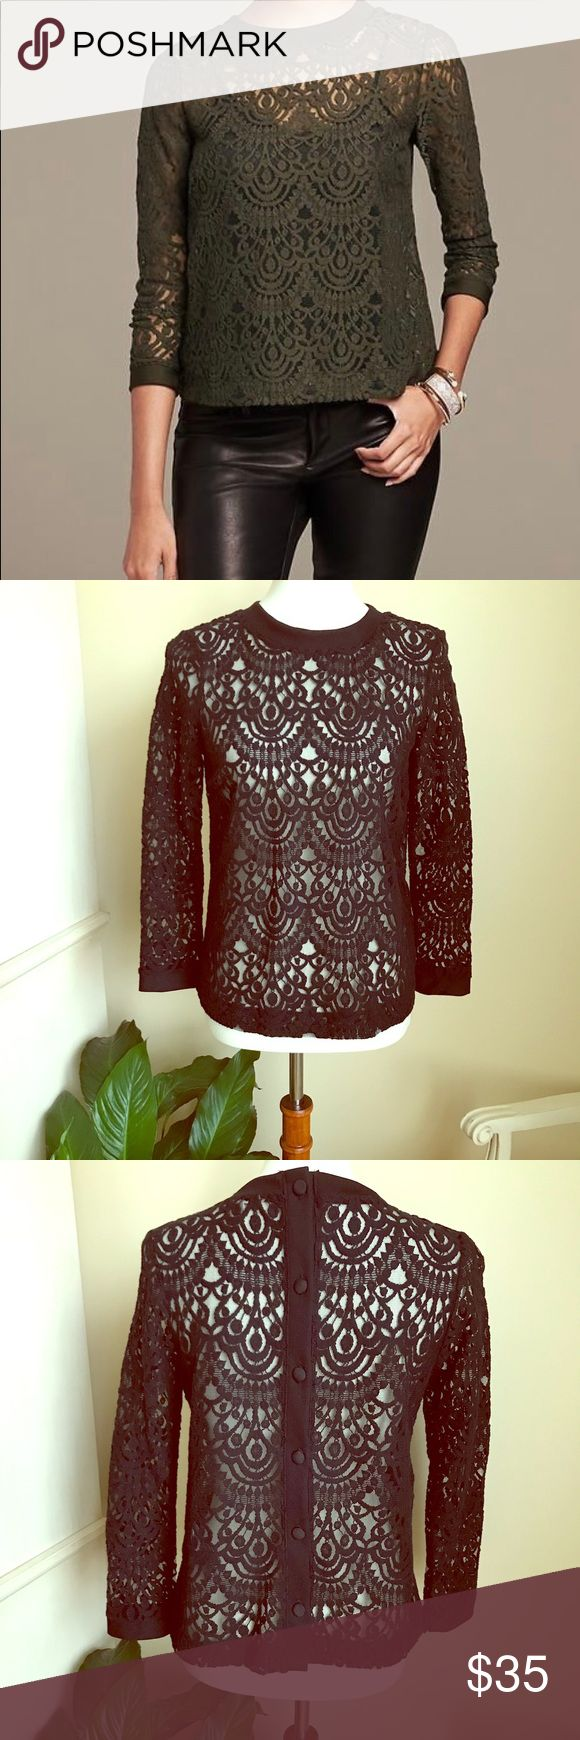 🎉HP🎉Banana Republic Black lace top Banana Republic long sleeve crew neck lace top in black with covered buttons in back. Never worn. NWOT. Banana Republic Tops Tees - Long Sleeve